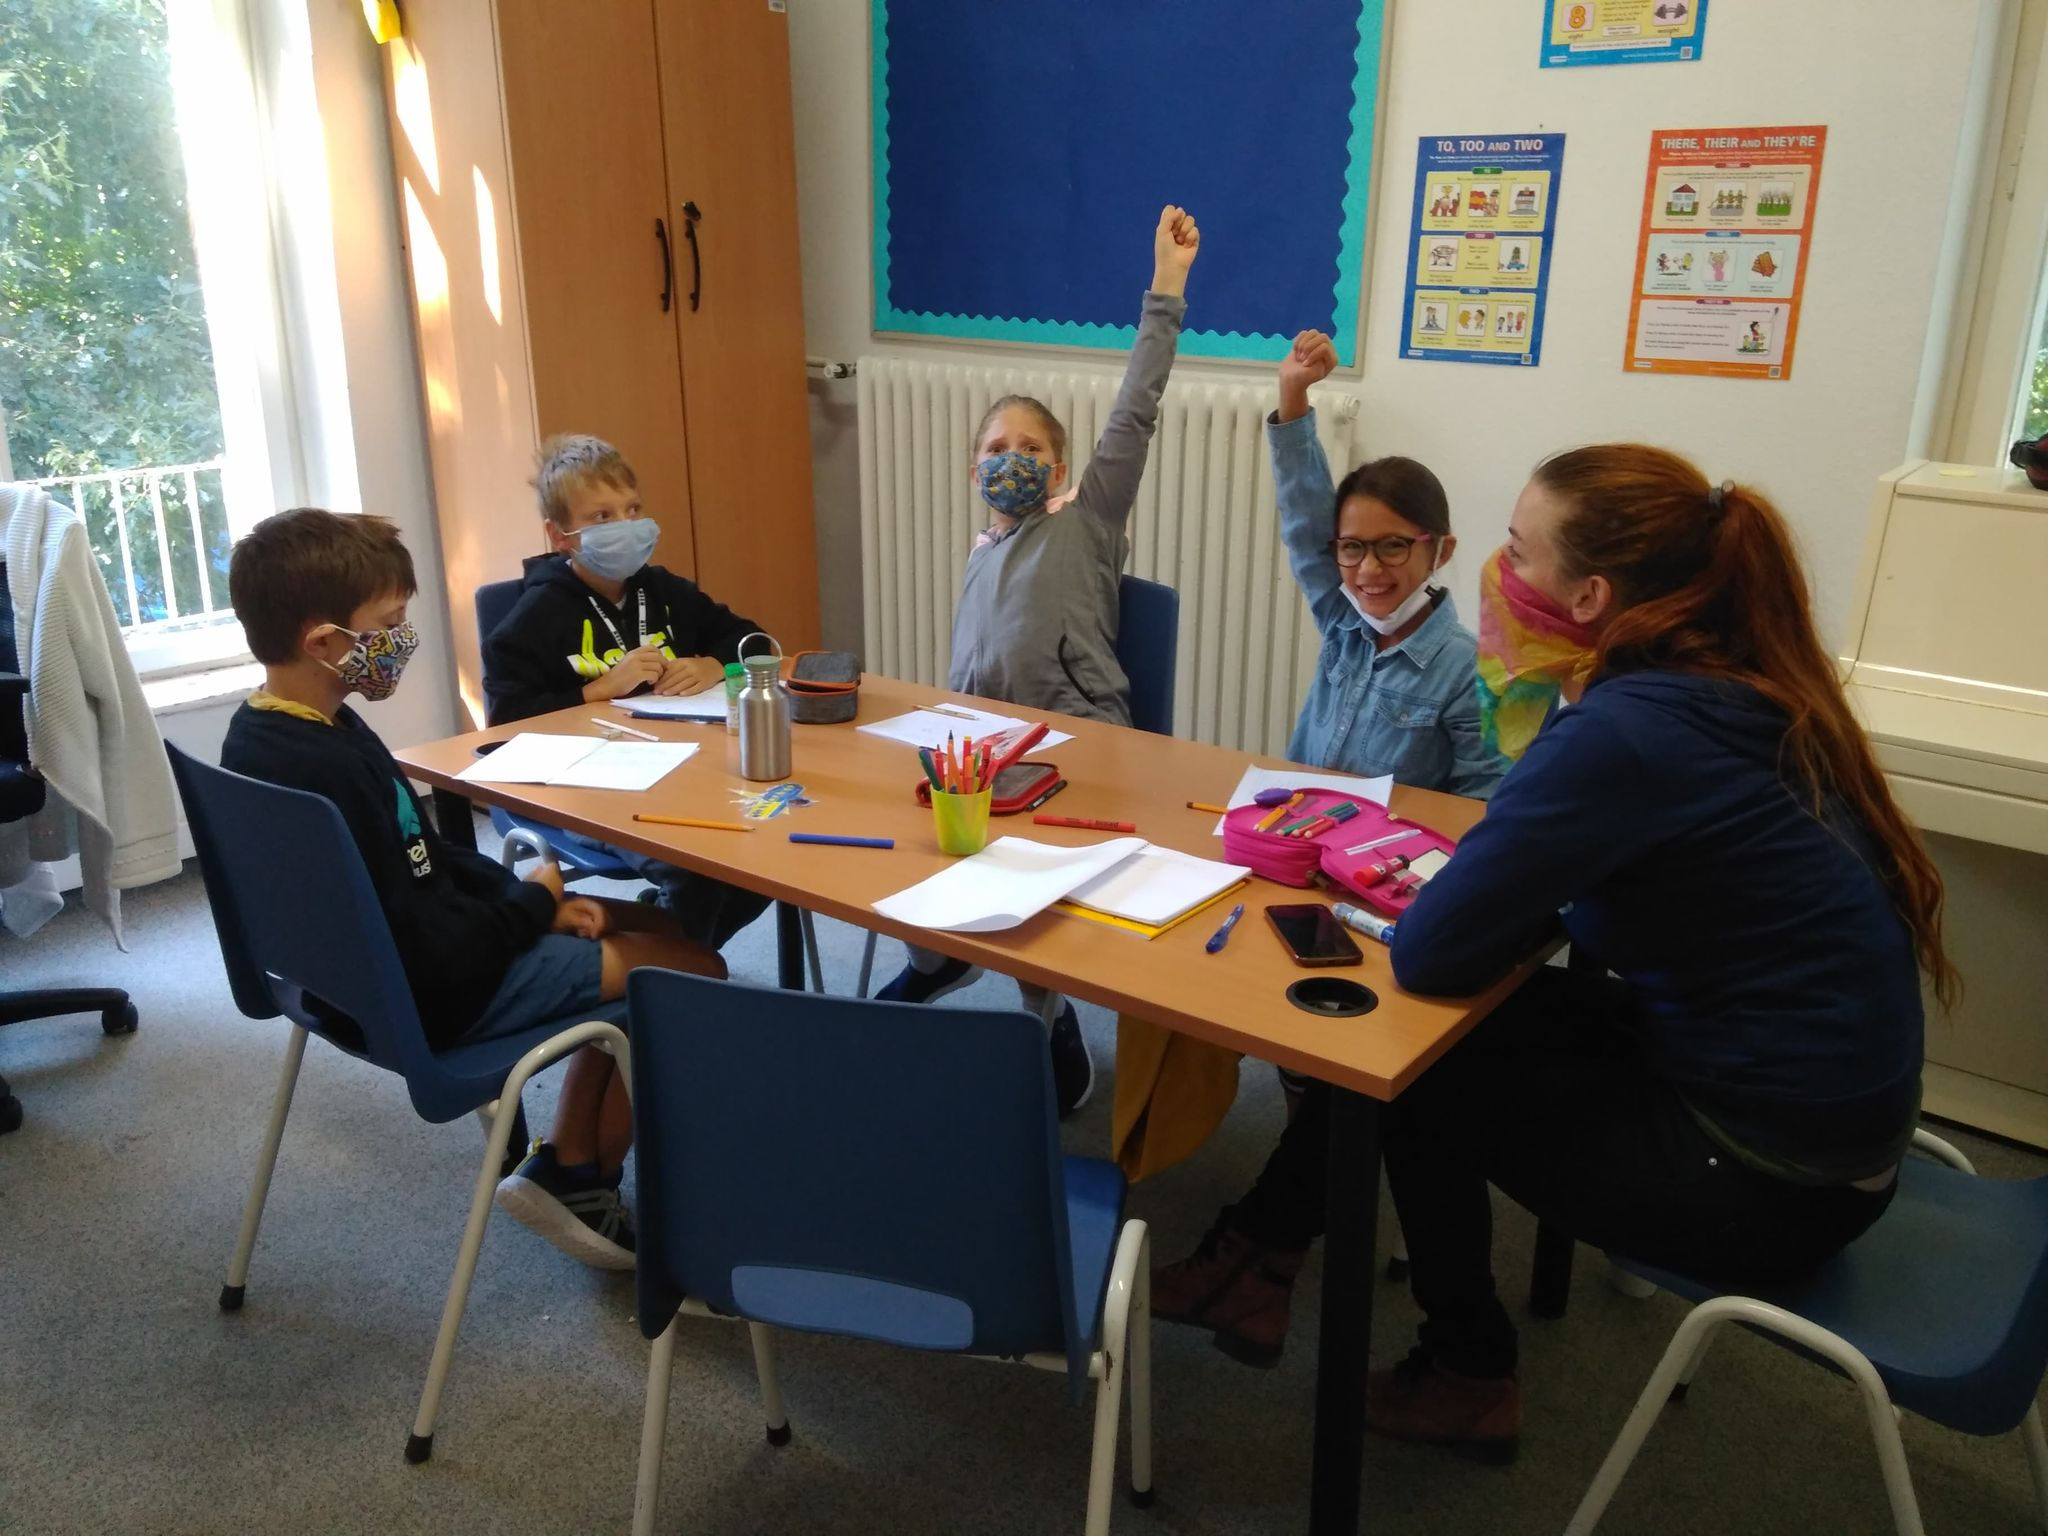 EAL Programme – A Flagship Of International School Of Budapest